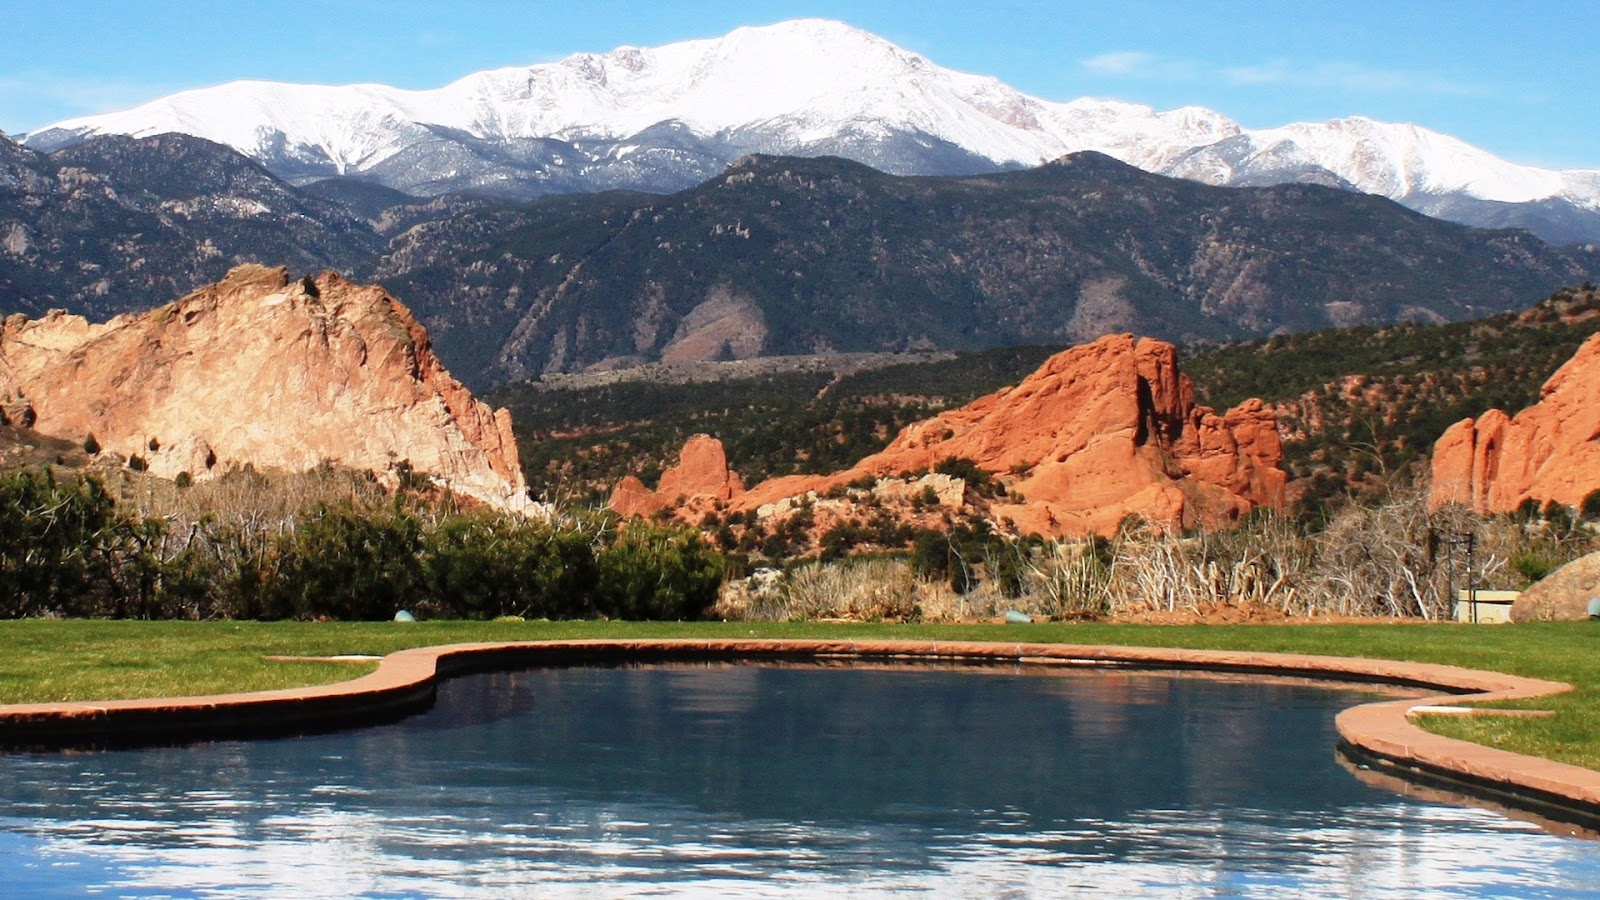 Beautiful mountain view of the Garden of the Gods Resort in Colorado Spring